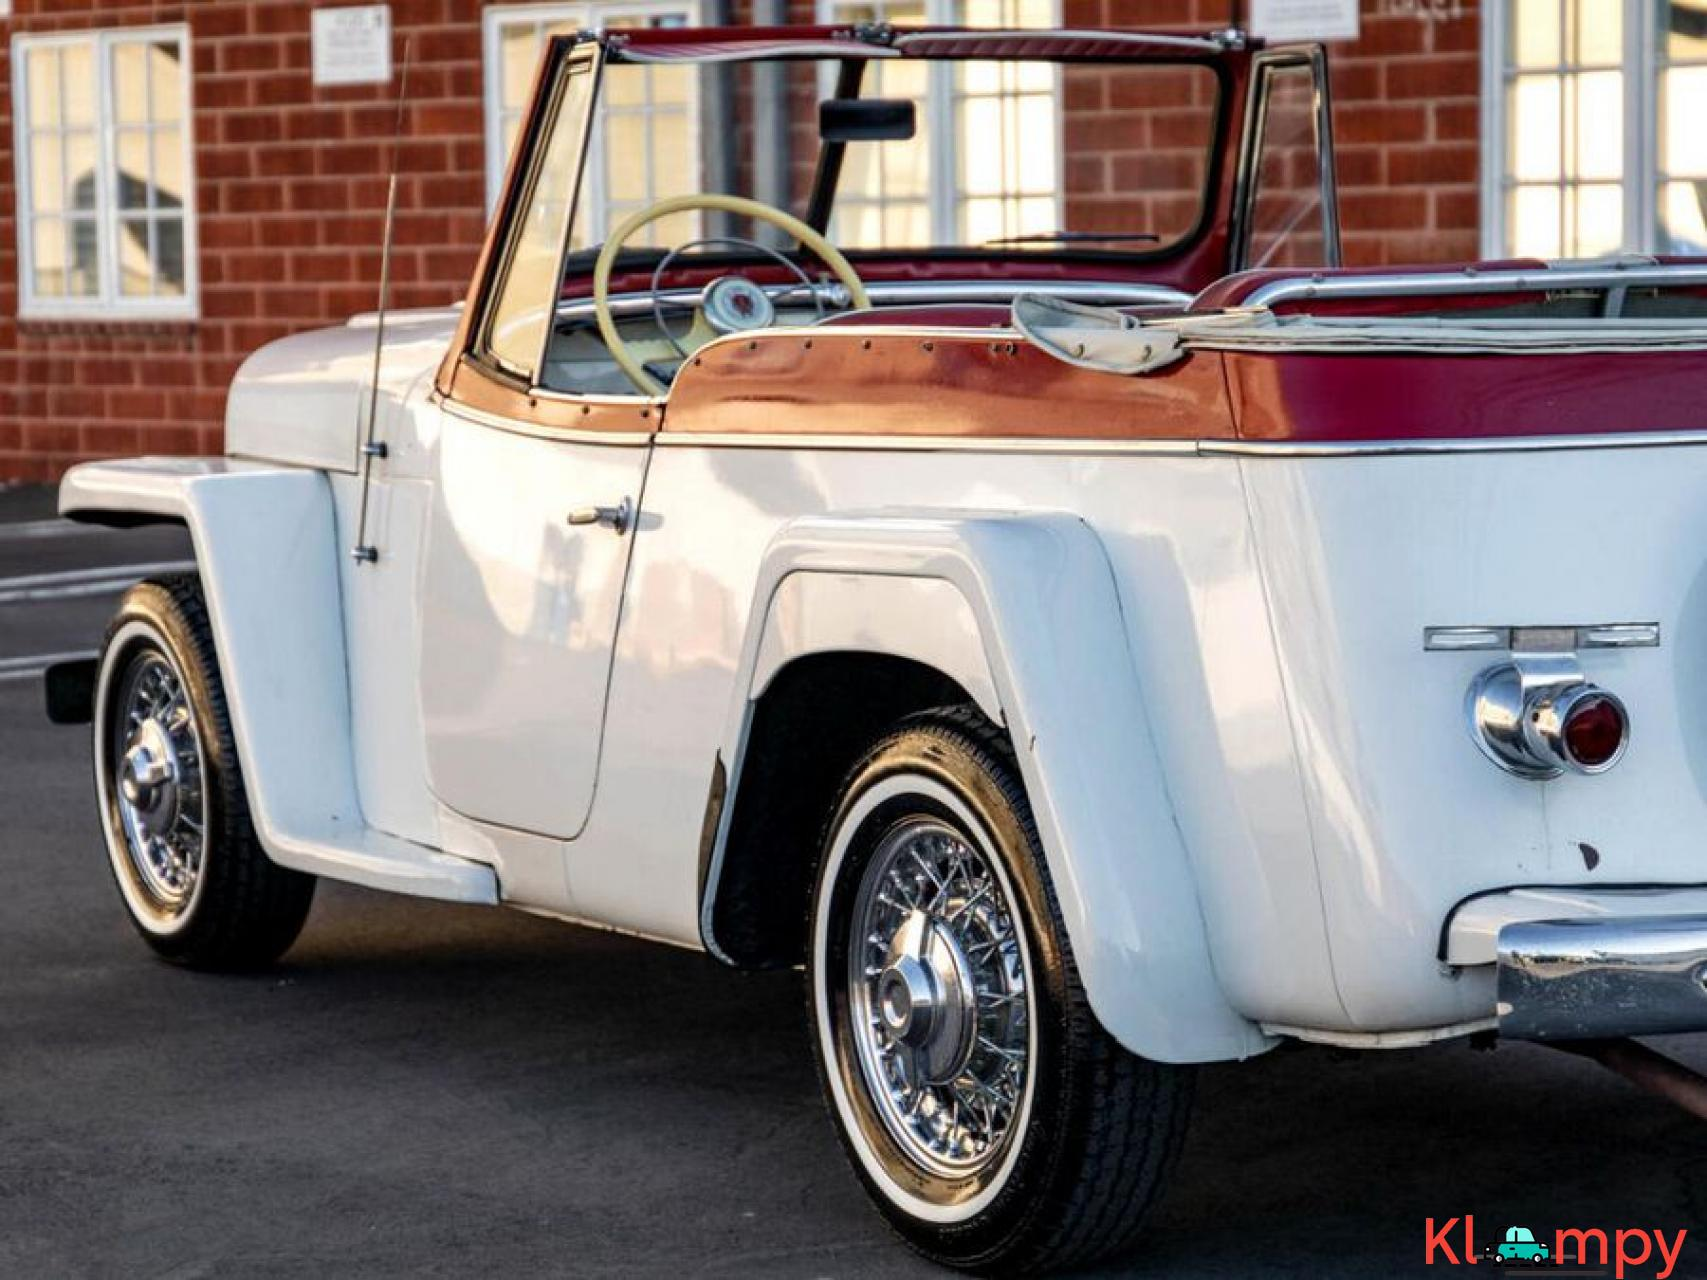 1951 Willys Jeepster Convertible 134.2 cu in 2.2 L - 8/17